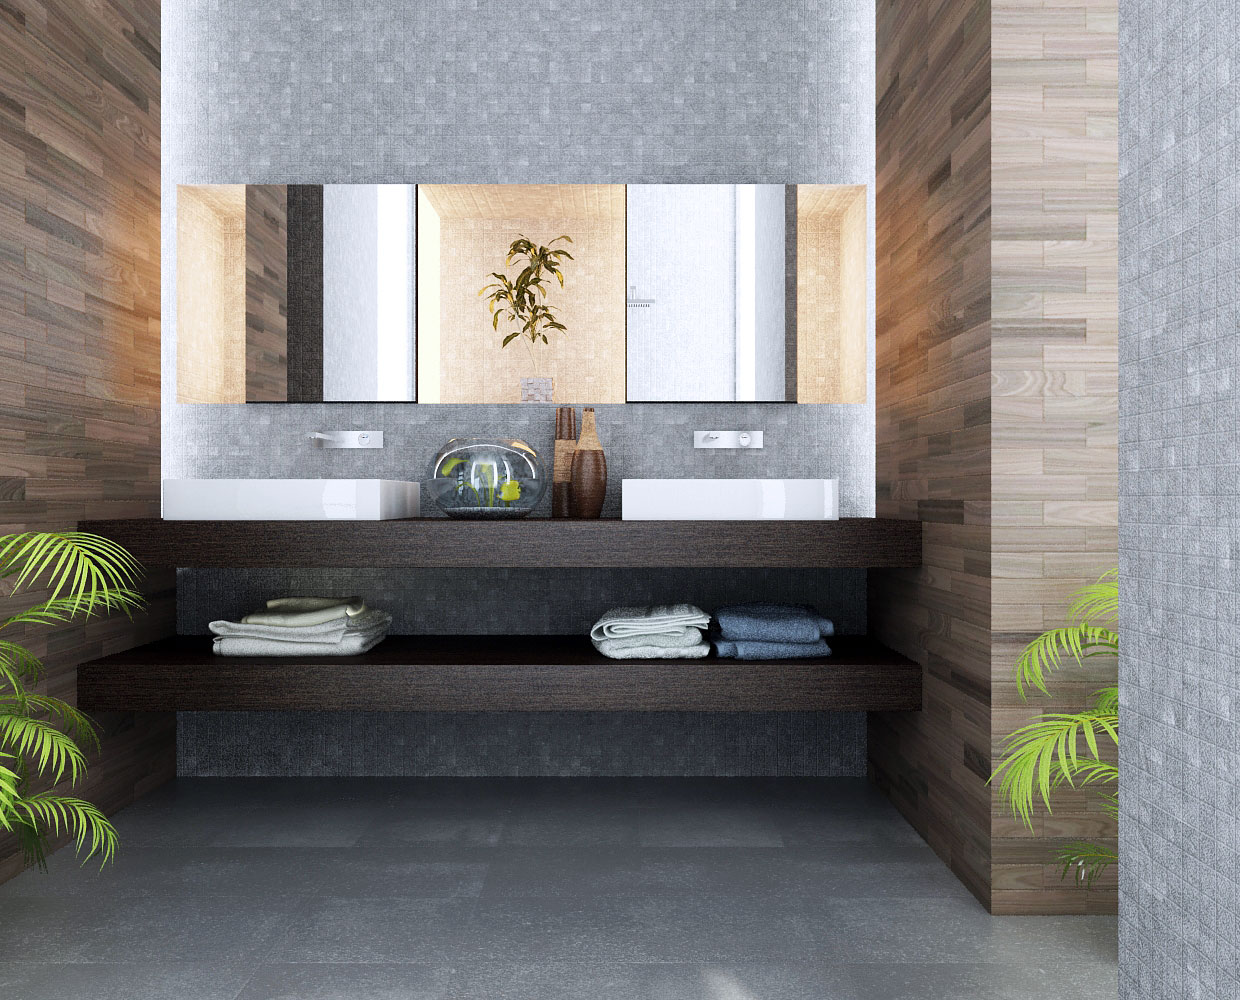 Fabulous Modern Bathroom Design Ideas 1240 x 1000 · 298 kB · jpeg